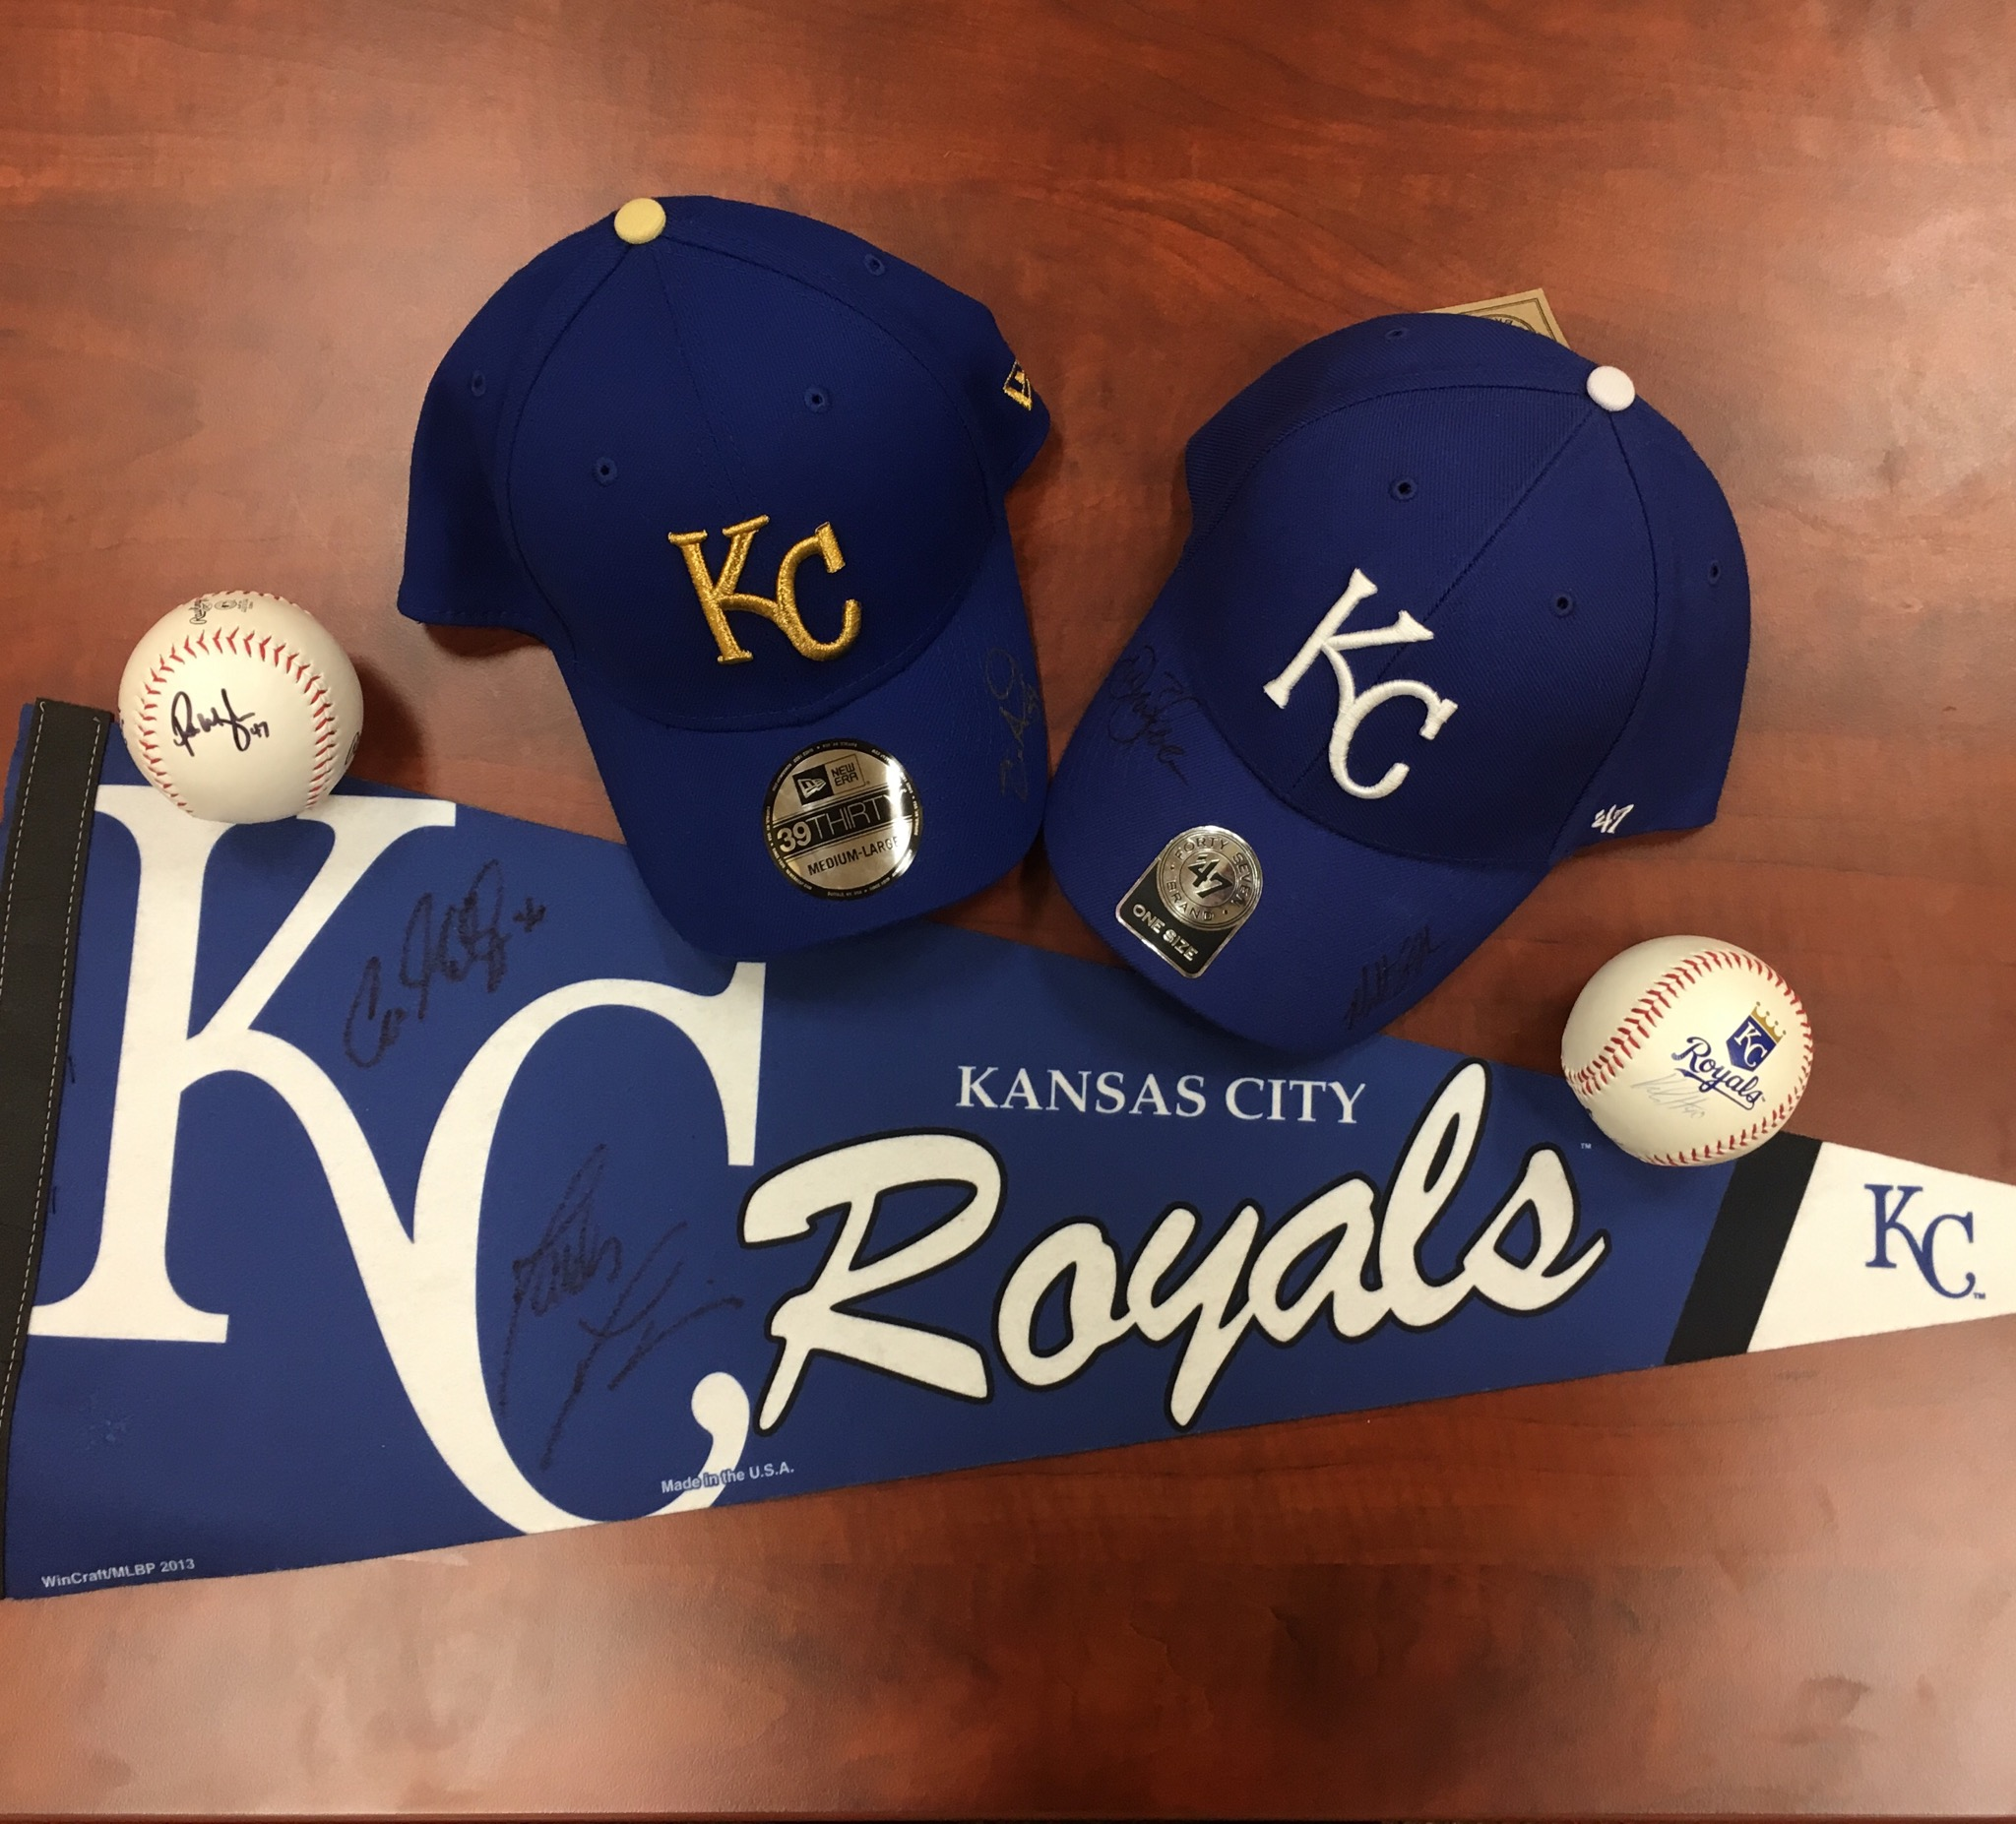 WIN one of five autographed Kansas City Royals items